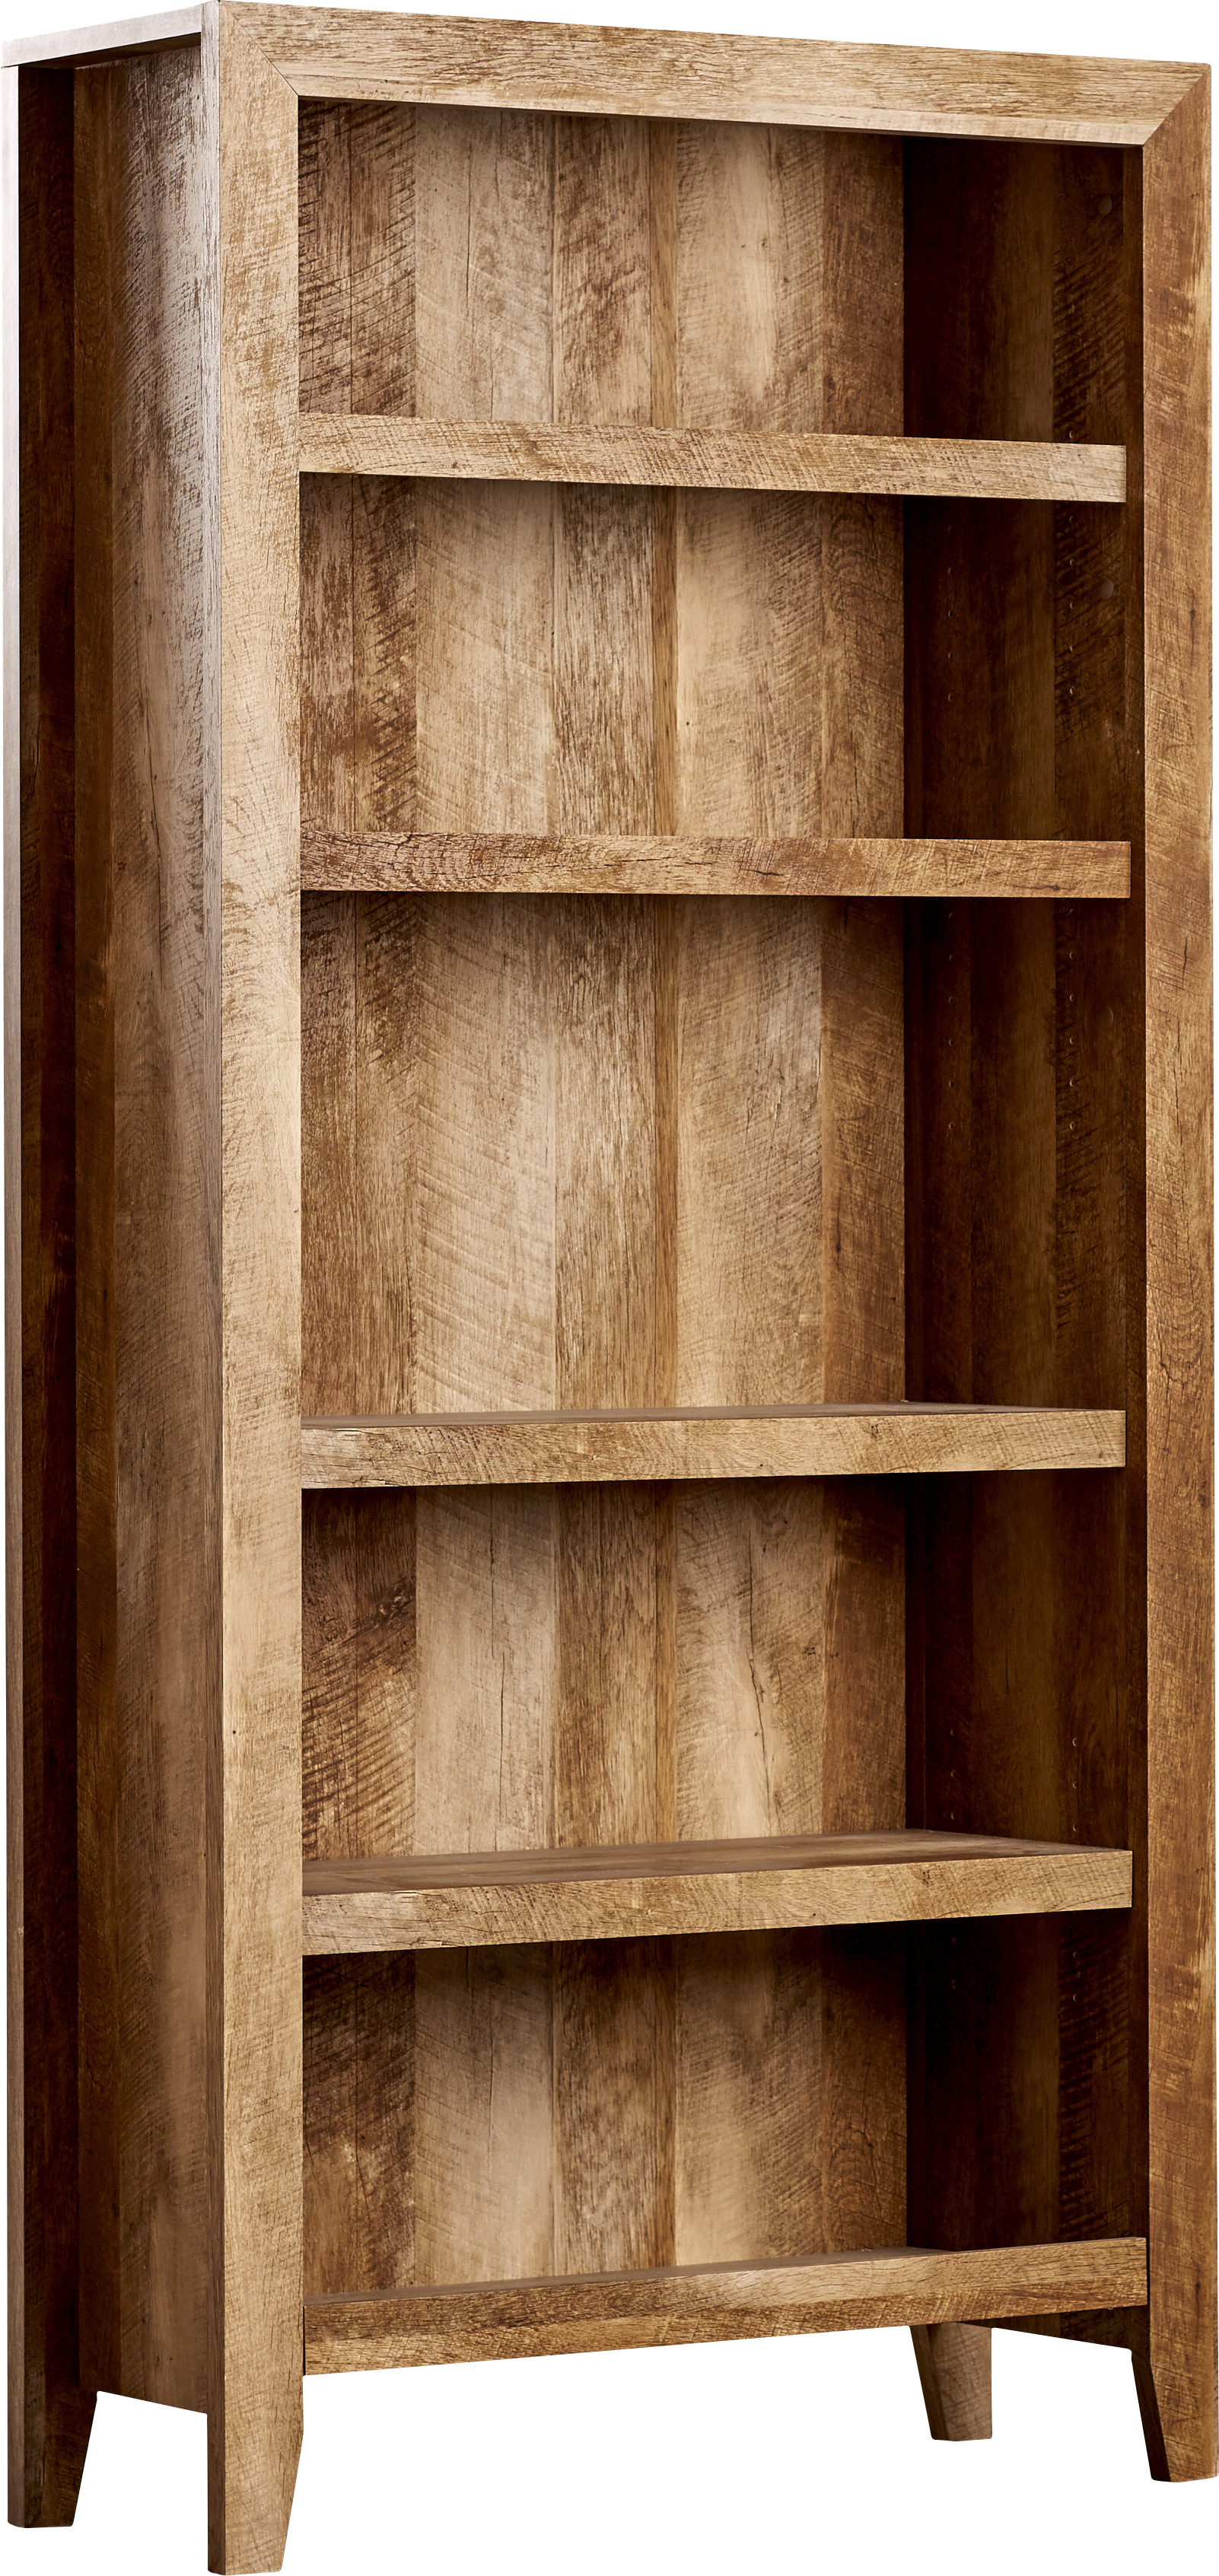 Modern Standard Bookcases (View 10 of 20)